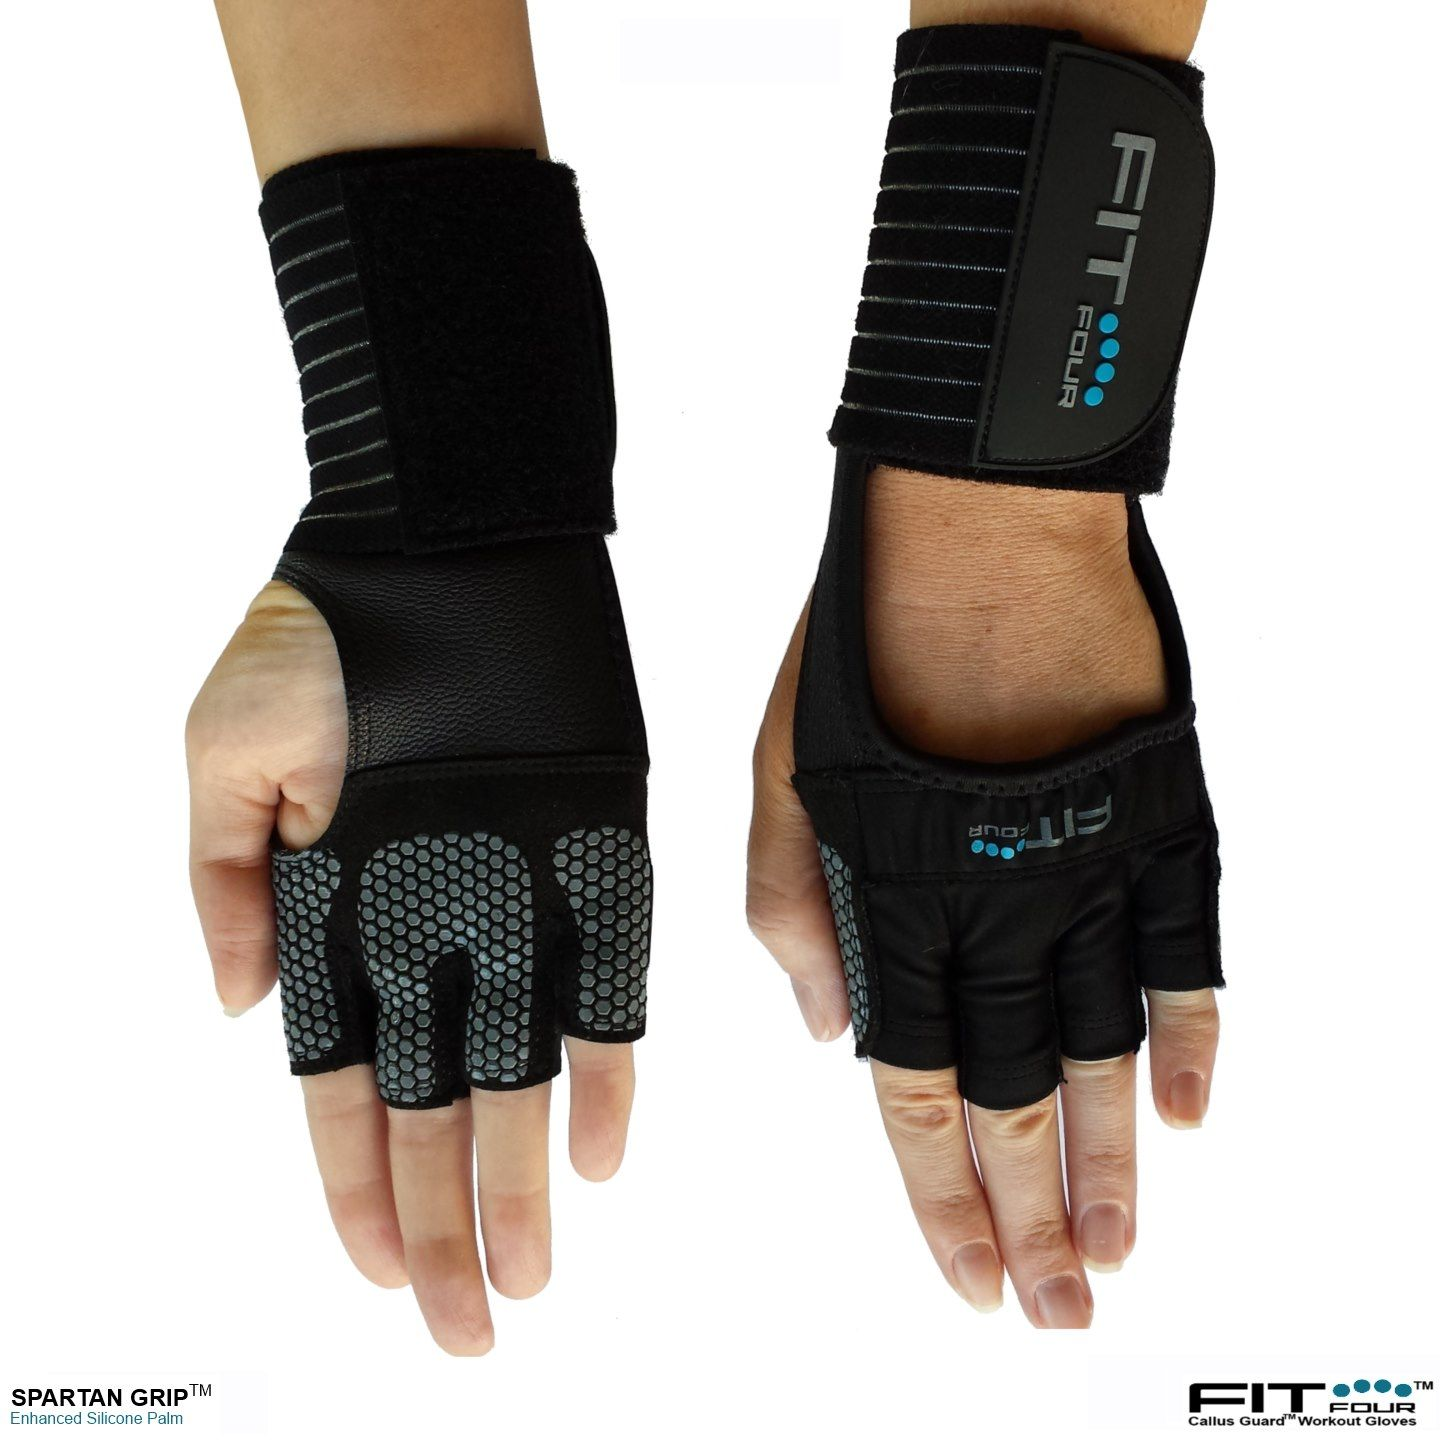 Xcrossfit Weight Lifting Gloves: The Spartan Grip Silicone Work Out Glove Features An Anti